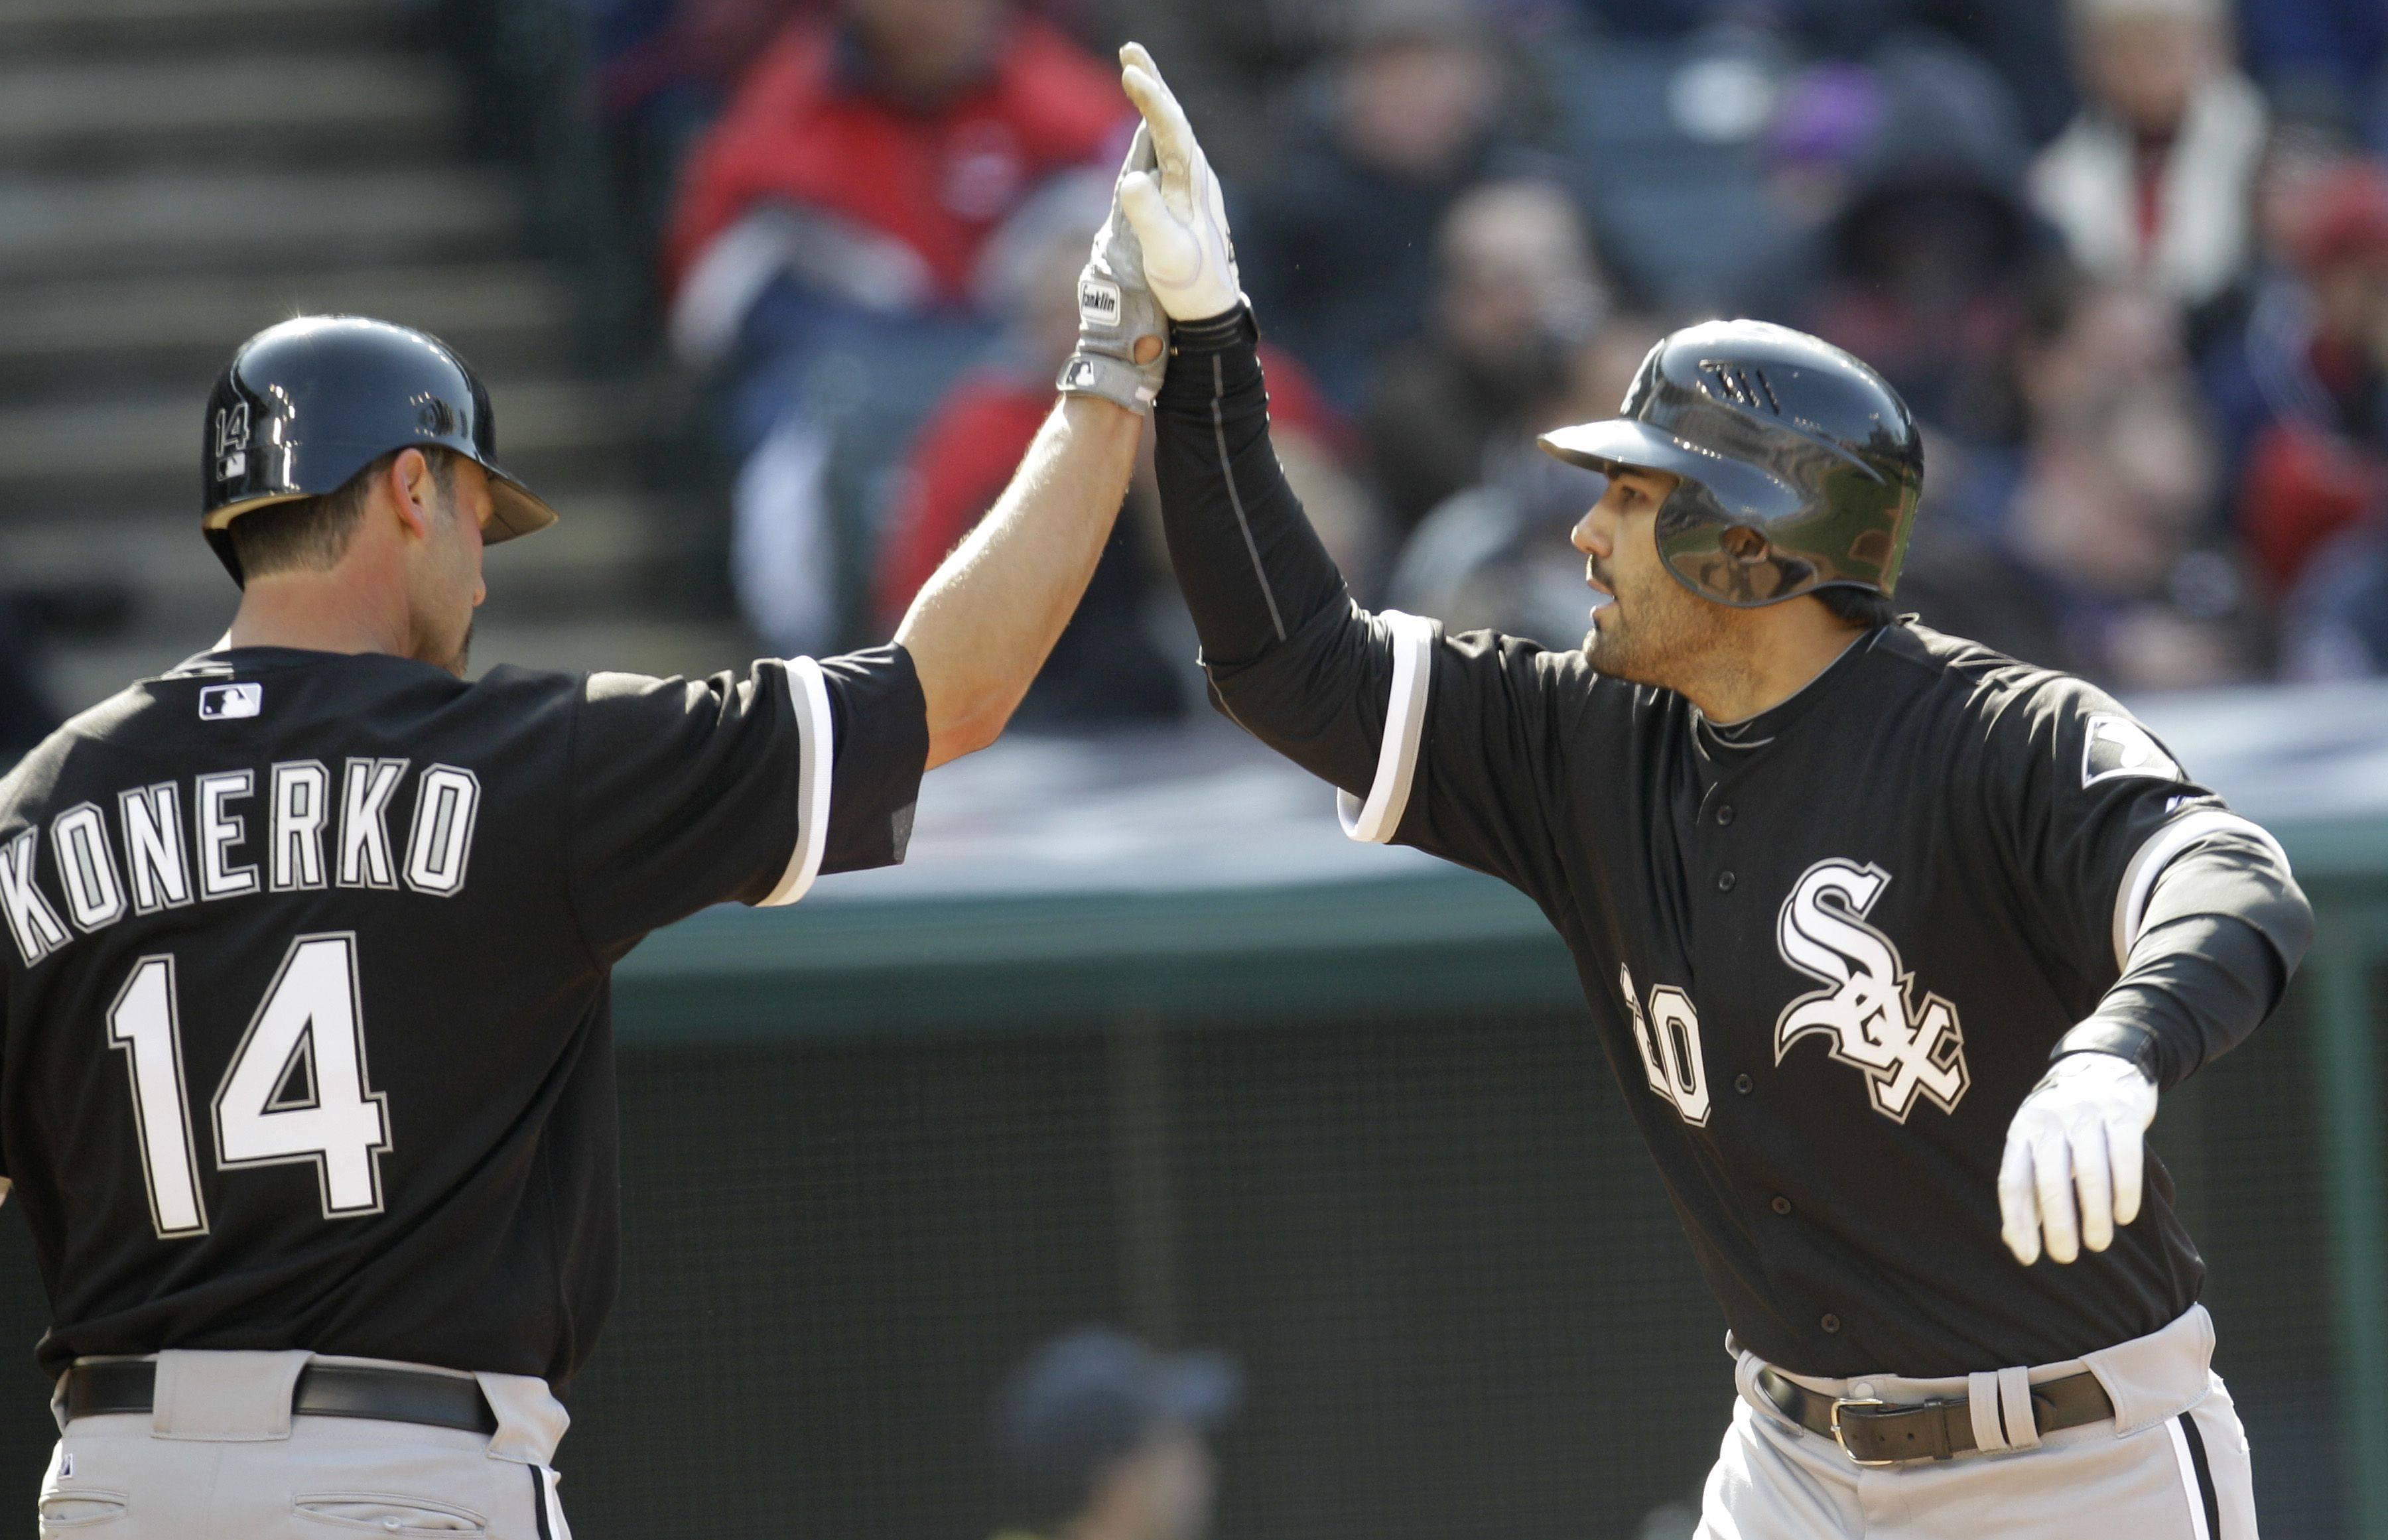 Chicago White Sox's Carlos Quentin, right, is congratulated by Paul Konerko after Quentin hit a two run home run in the third inning in an opening day baseball game against the Cleveland Indians, Friday, April 1, 2011, in Cleveland. Konerko scored.